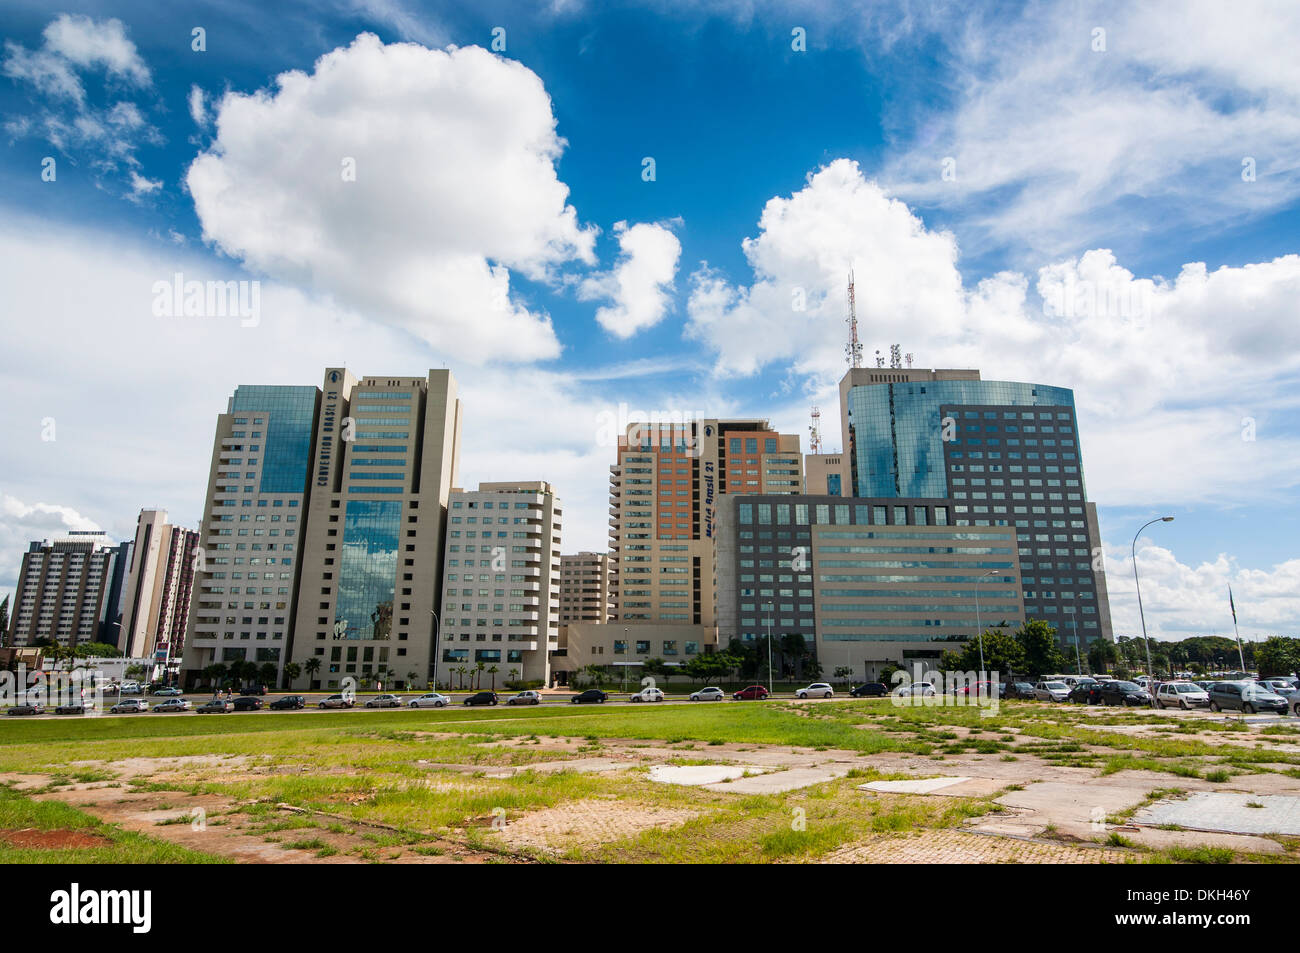 High rise buildings in the center of Brasilia, Brazil, South America - Stock Image